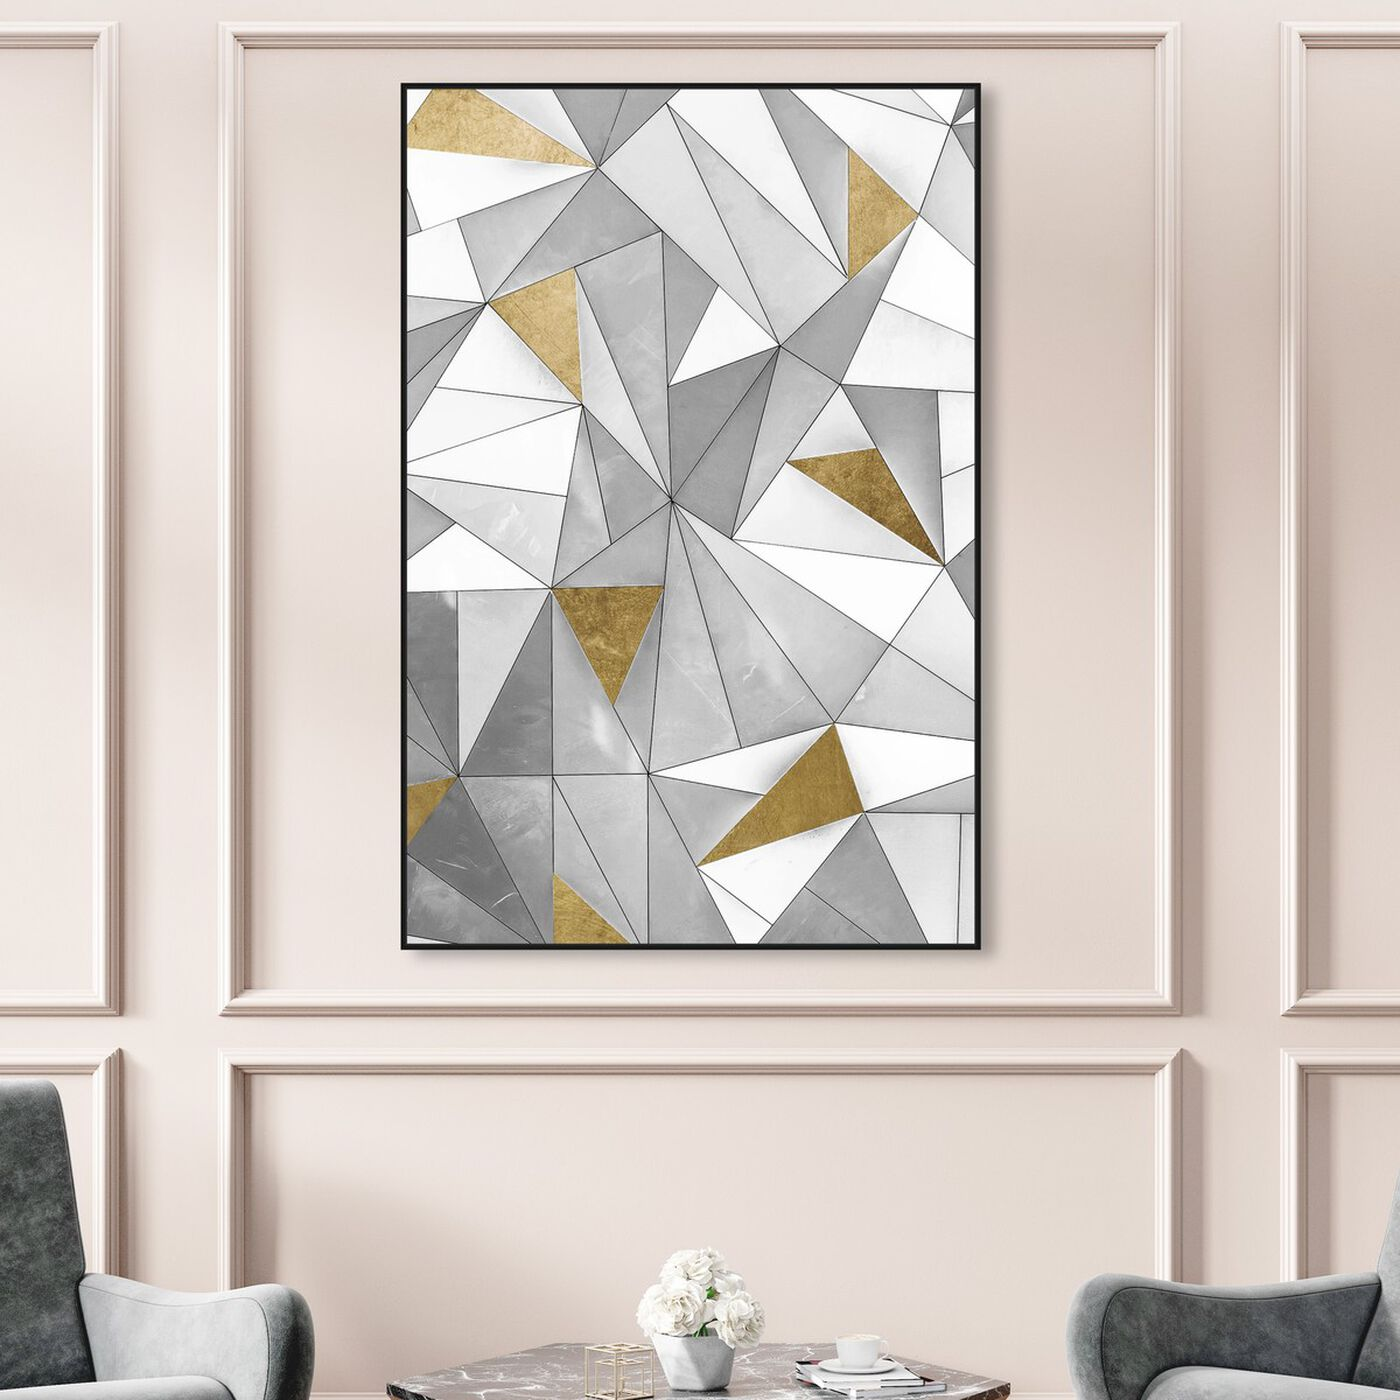 Hanging view of Triangular Wall featuring abstract and geometric art.